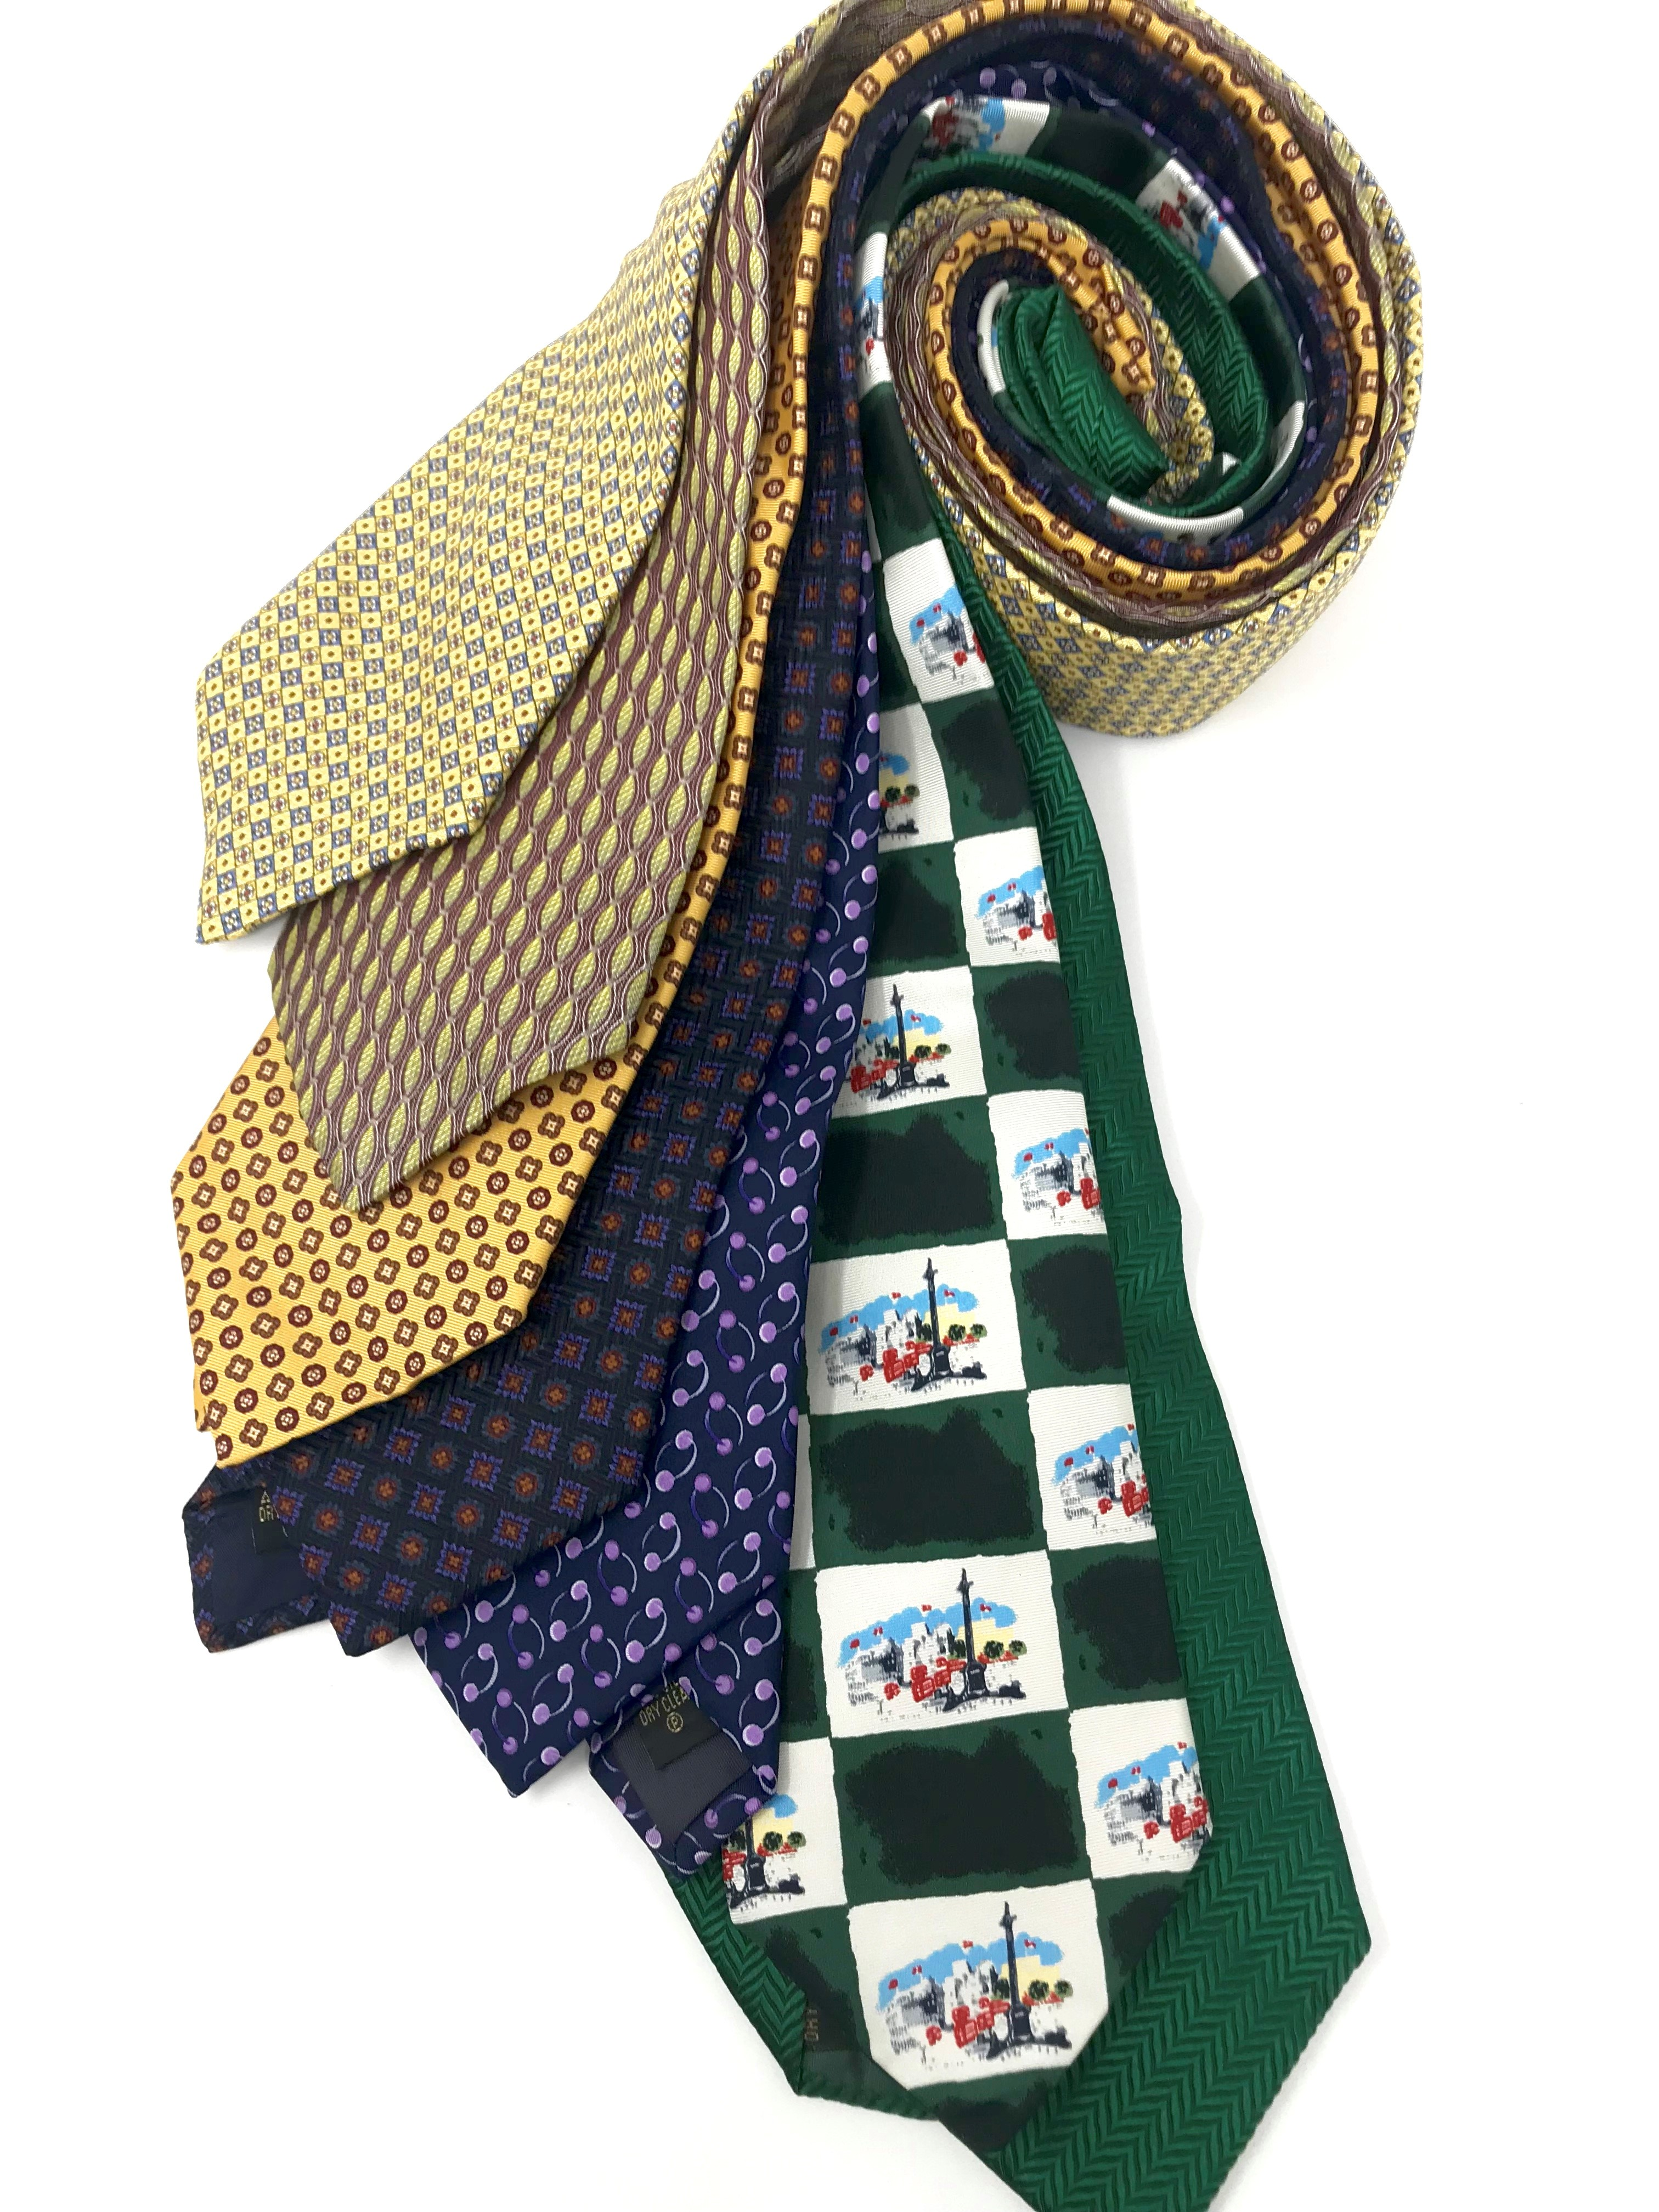 Cavenagh of London 7Piece 100% Pure Silk Ties Made in UK (711D)RRP£139.99